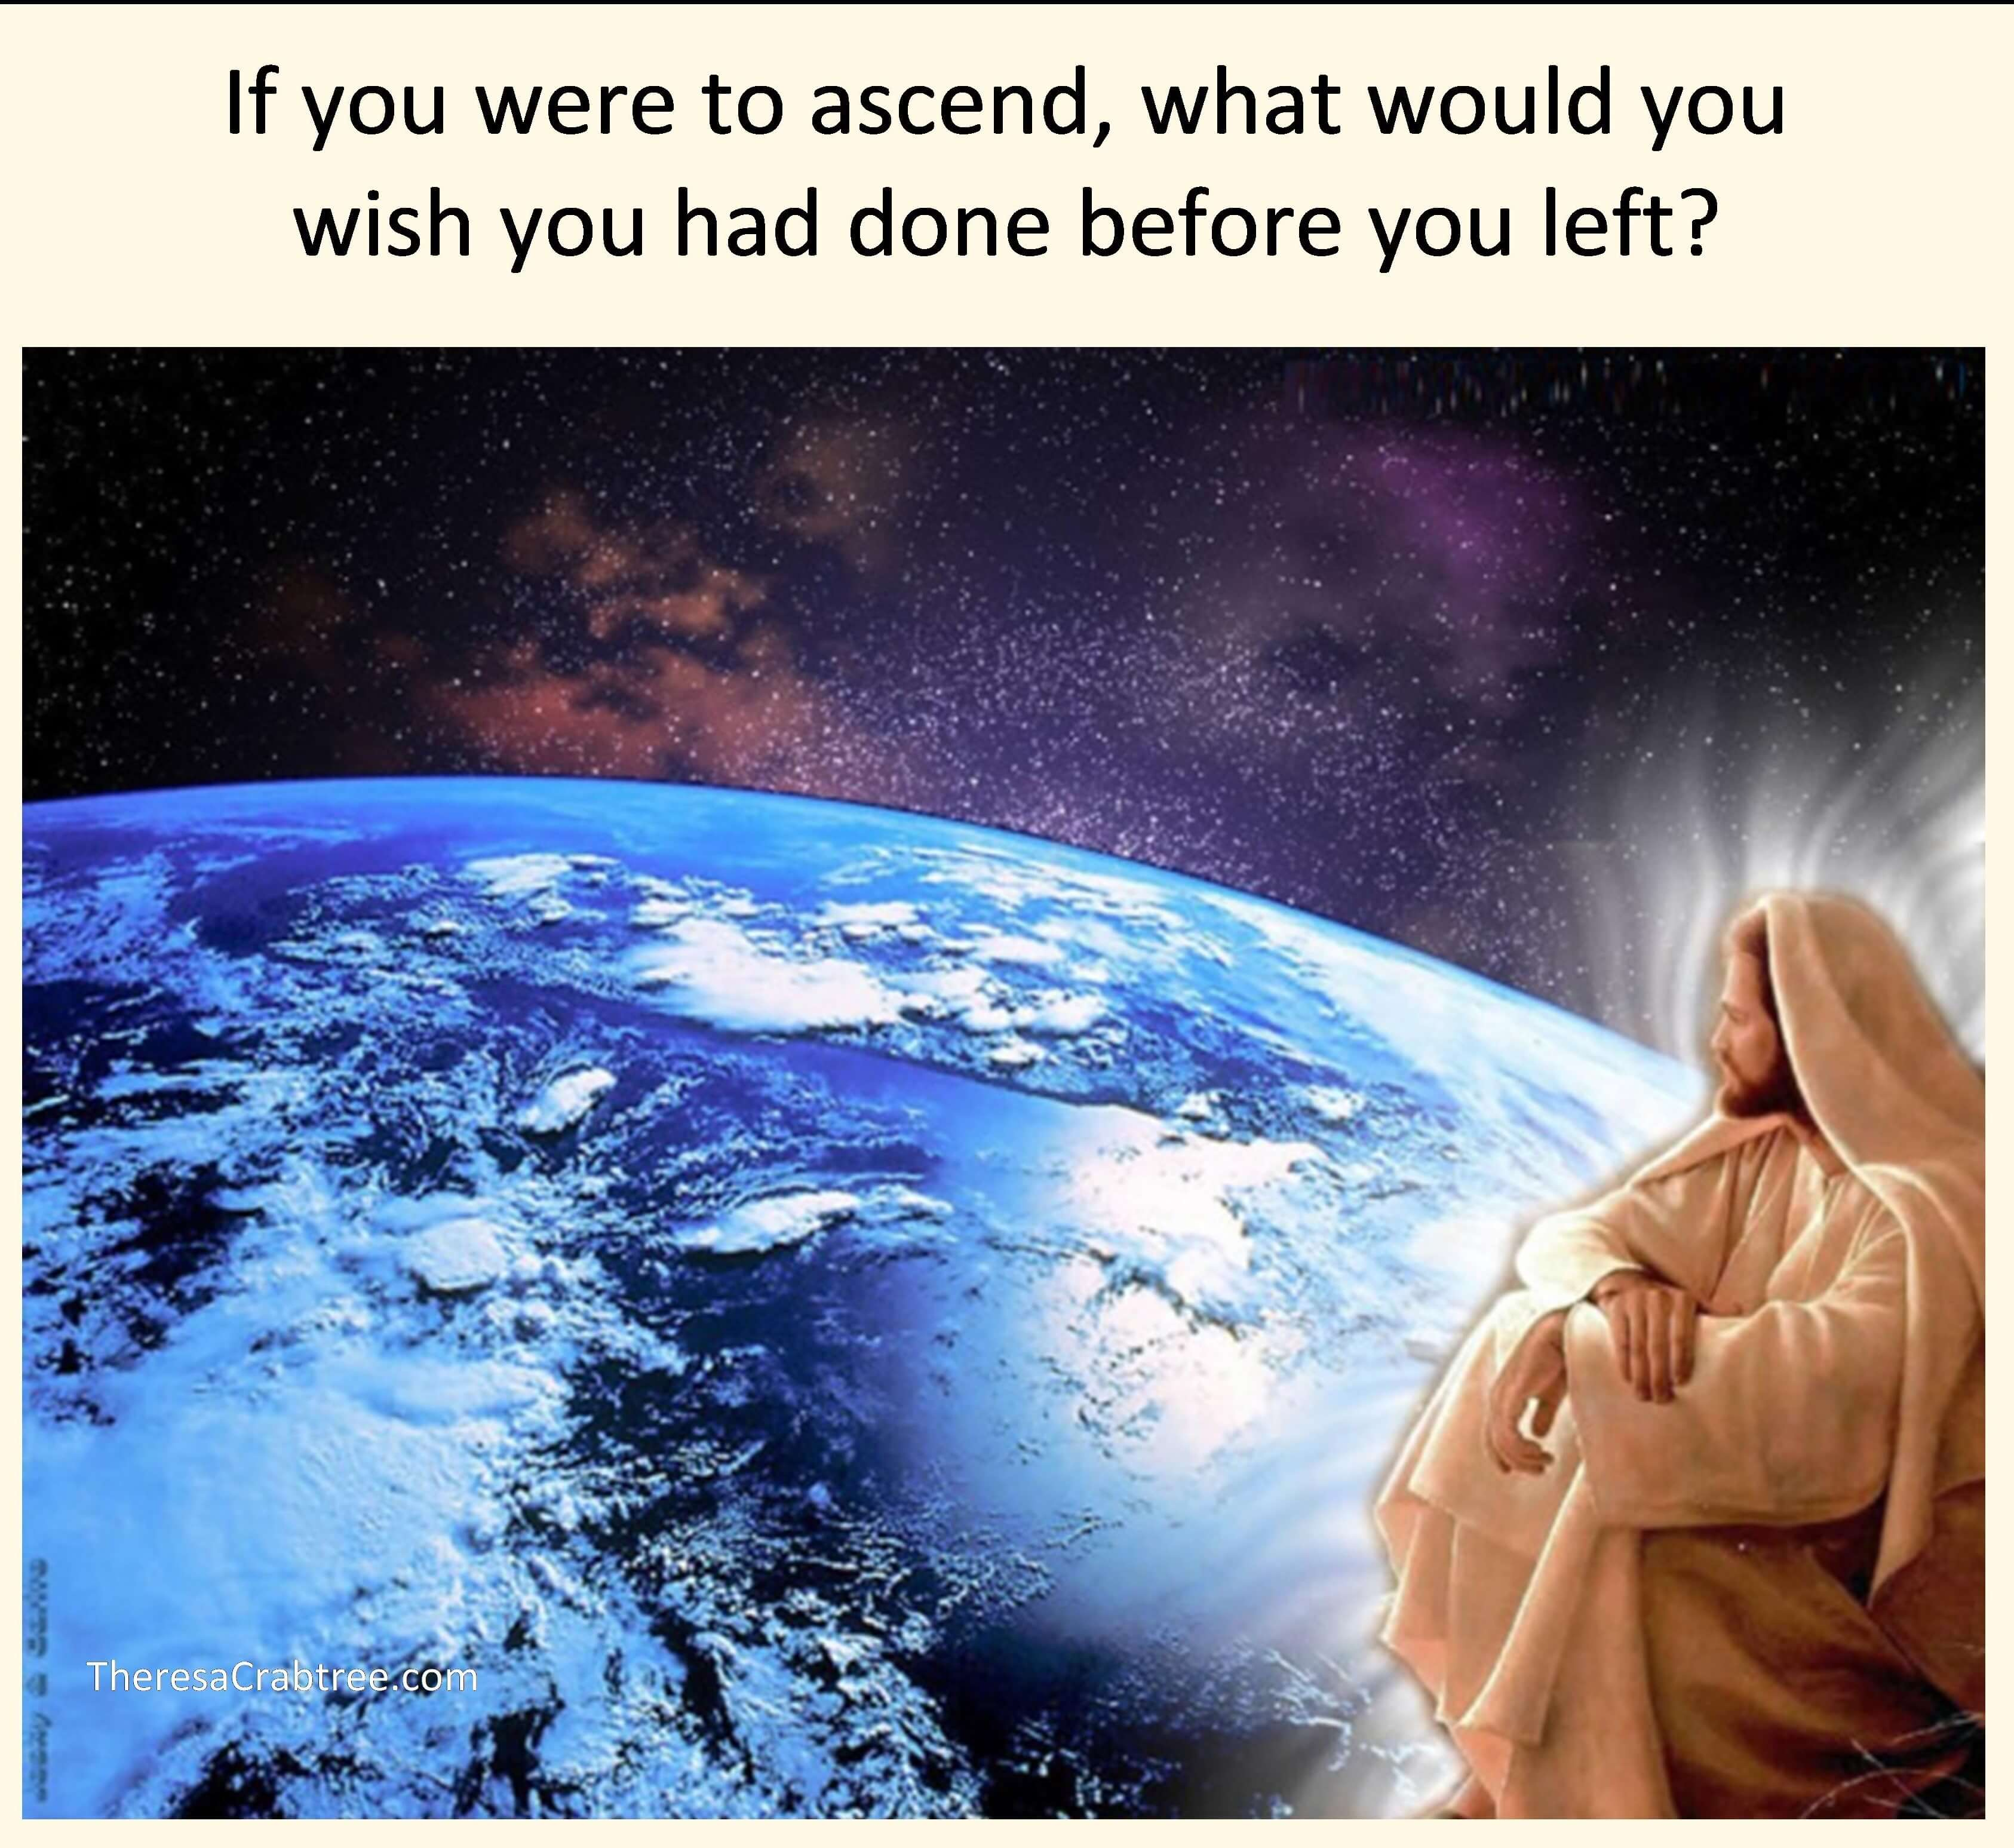 If you were to ascend today…